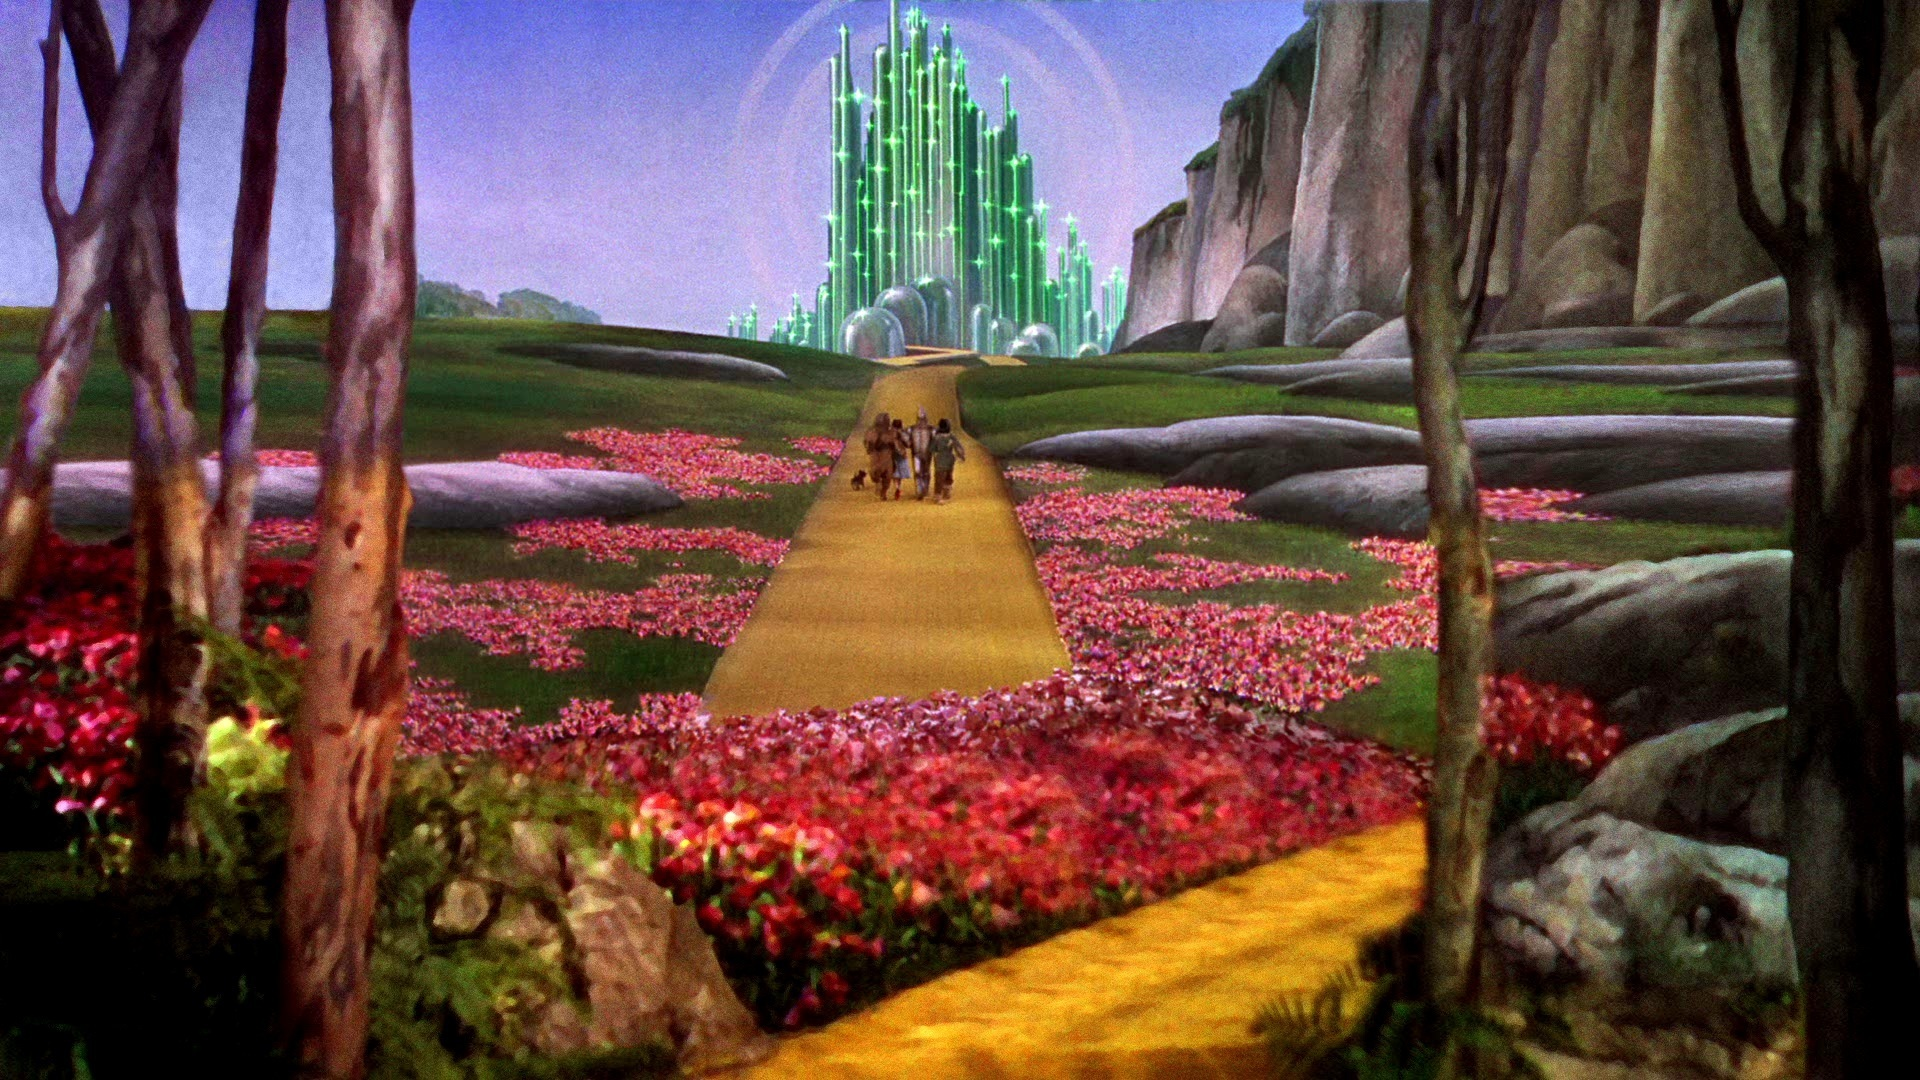 The Wizard Of Oz Hardcover Book Illustrated By Graham Rawle 2008